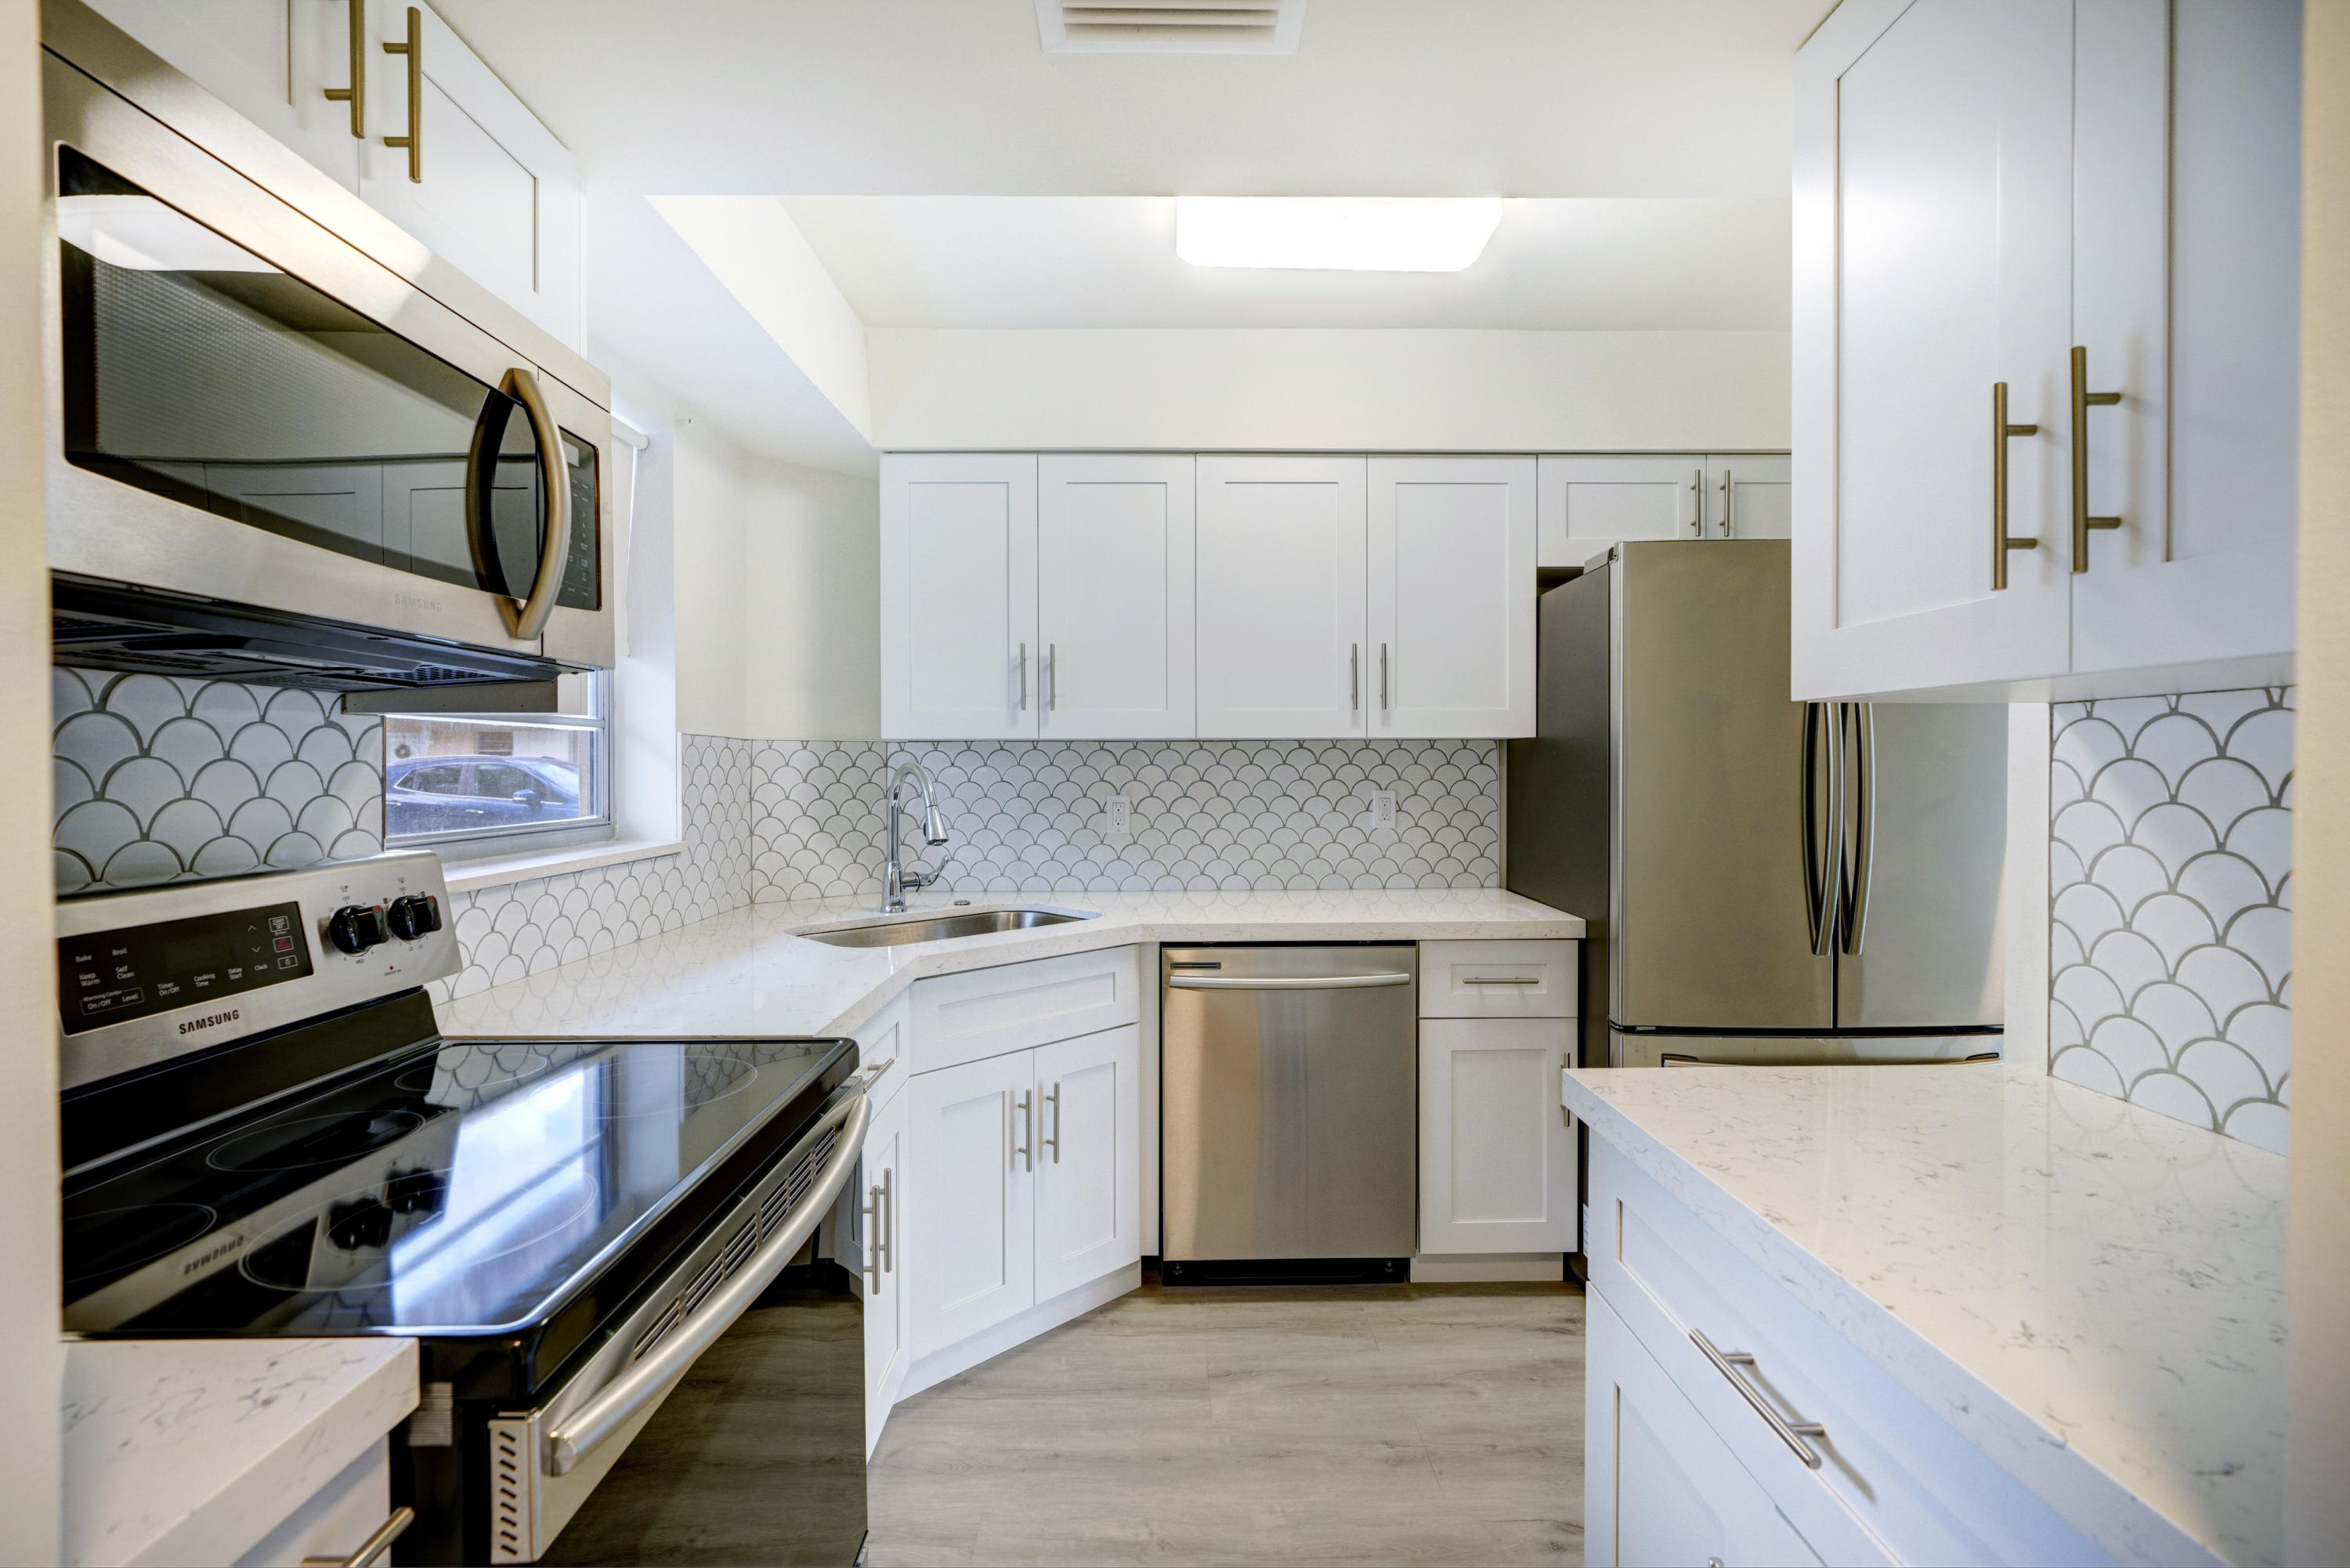 18081 Country Club Drive 265, Tequesta, Florida 33469, 2 Bedrooms Bedrooms, ,2 BathroomsBathrooms,A,Condominium,Country Club,RX-10584507